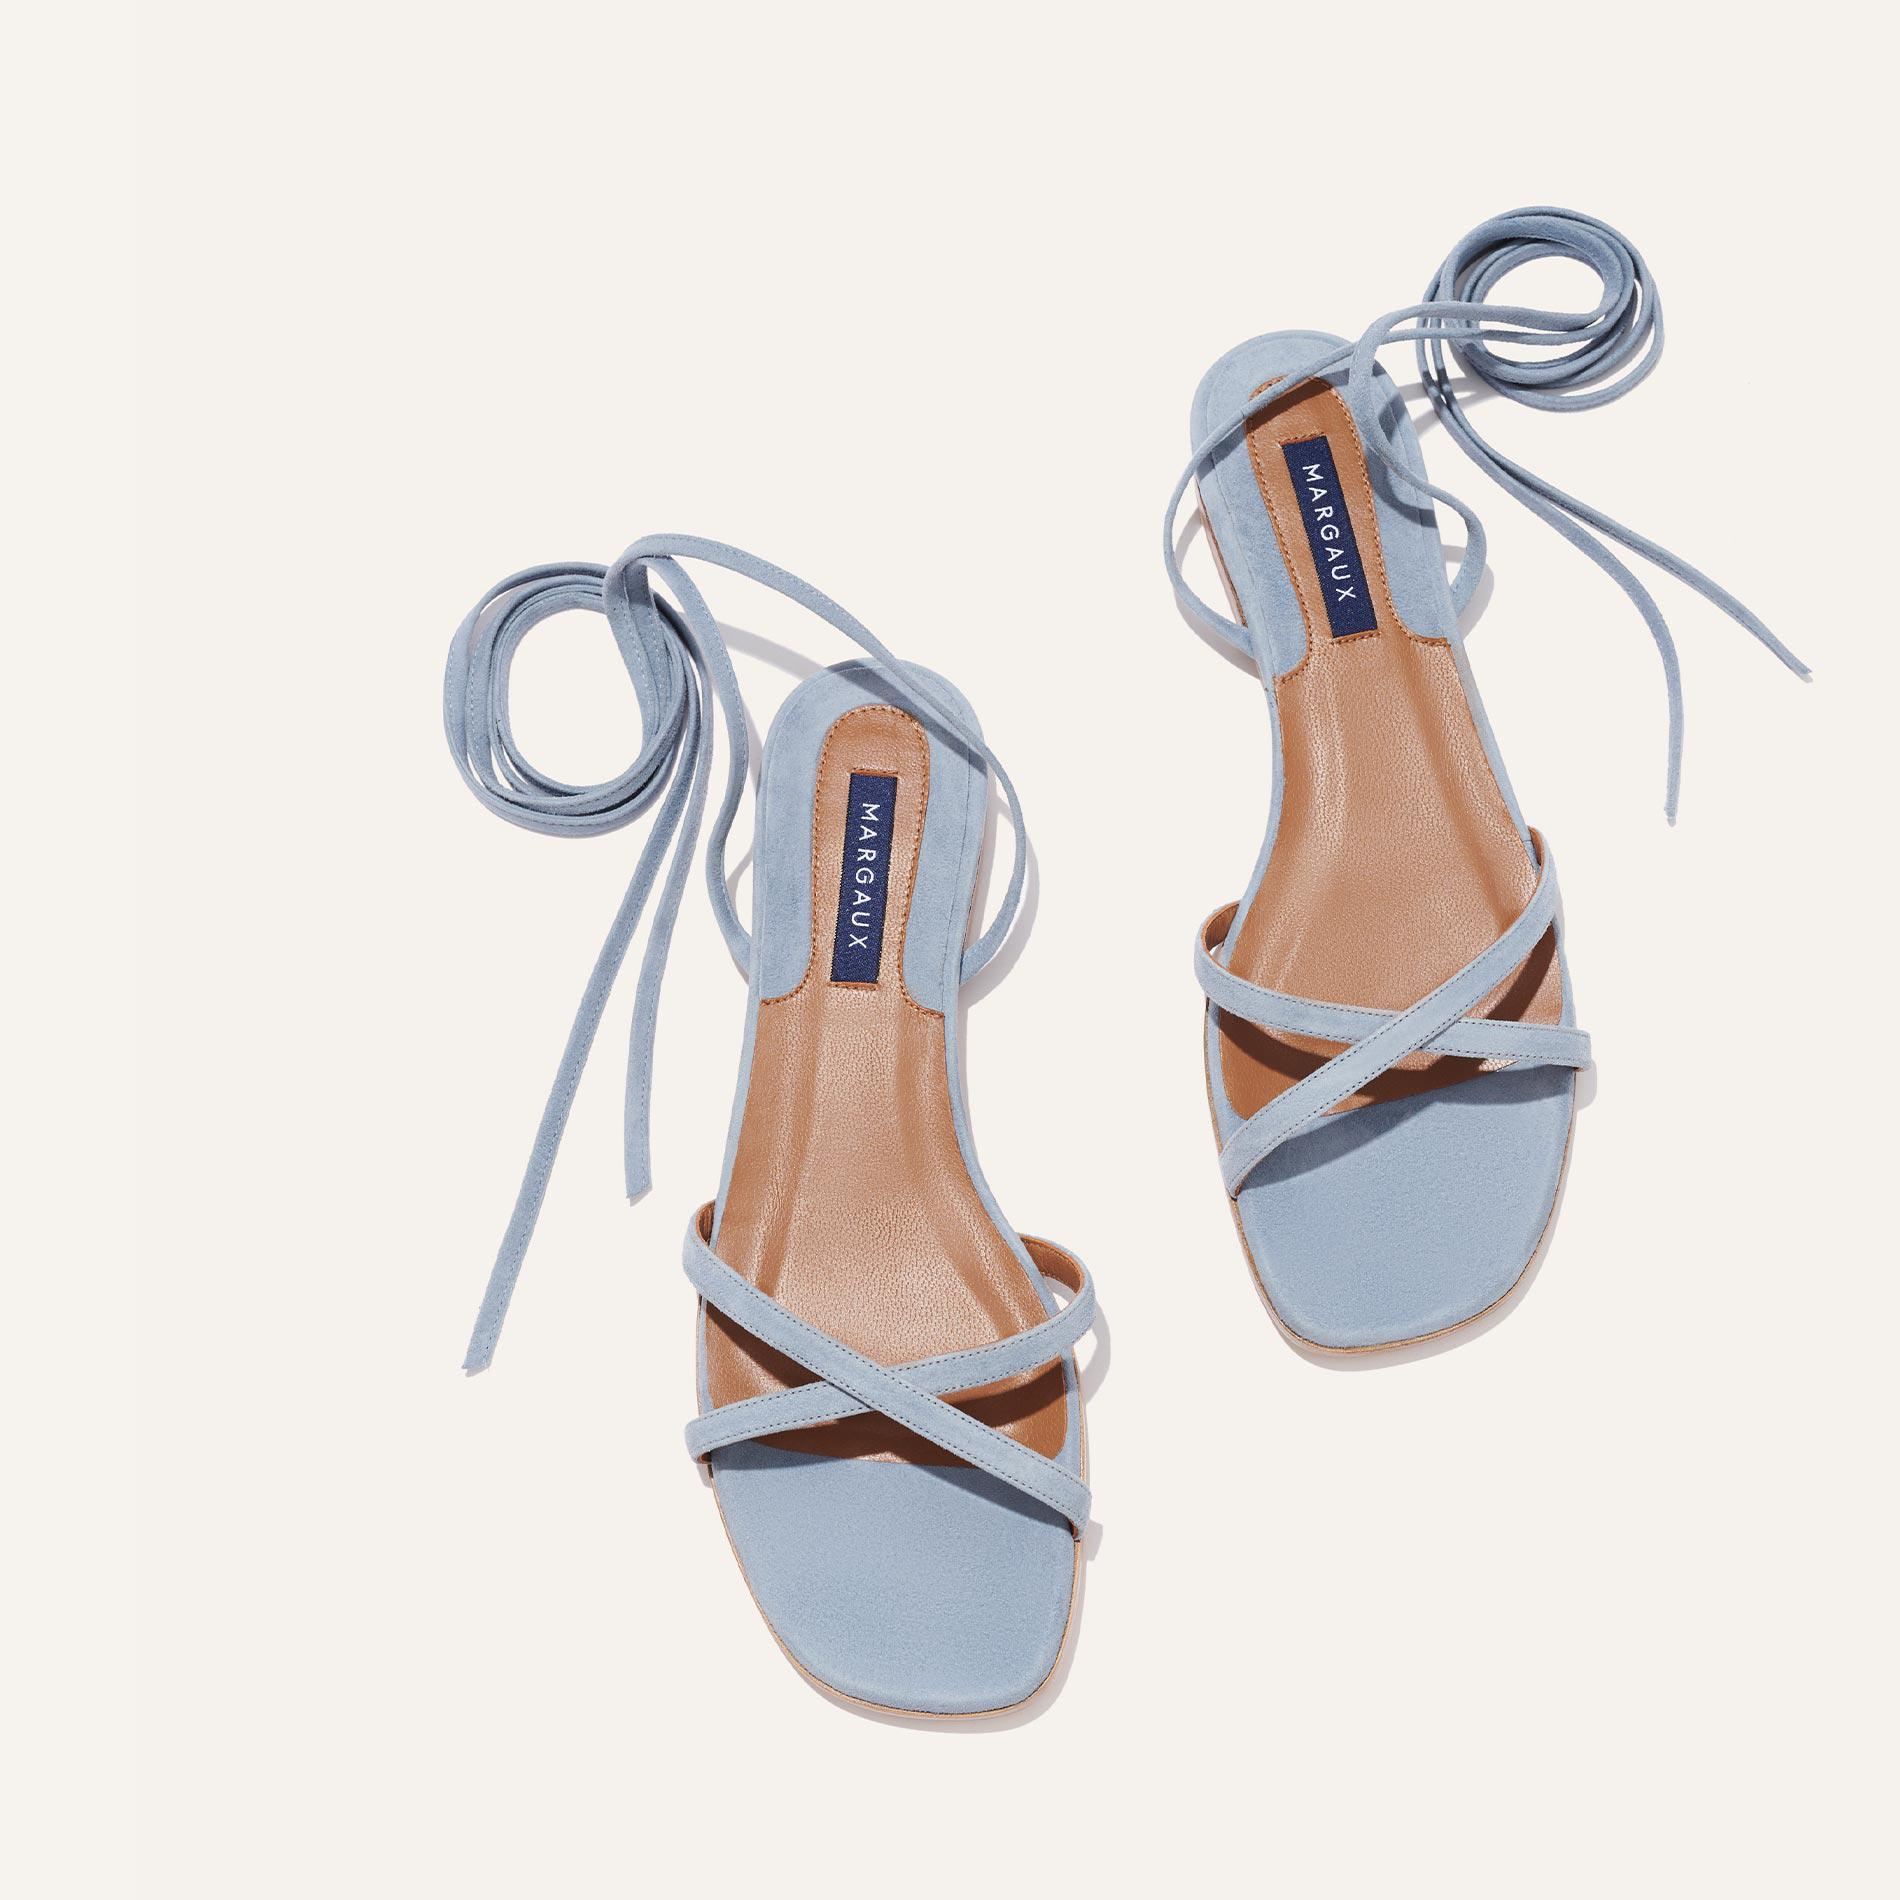 The Wrap Sandal - French Blue Suede 2